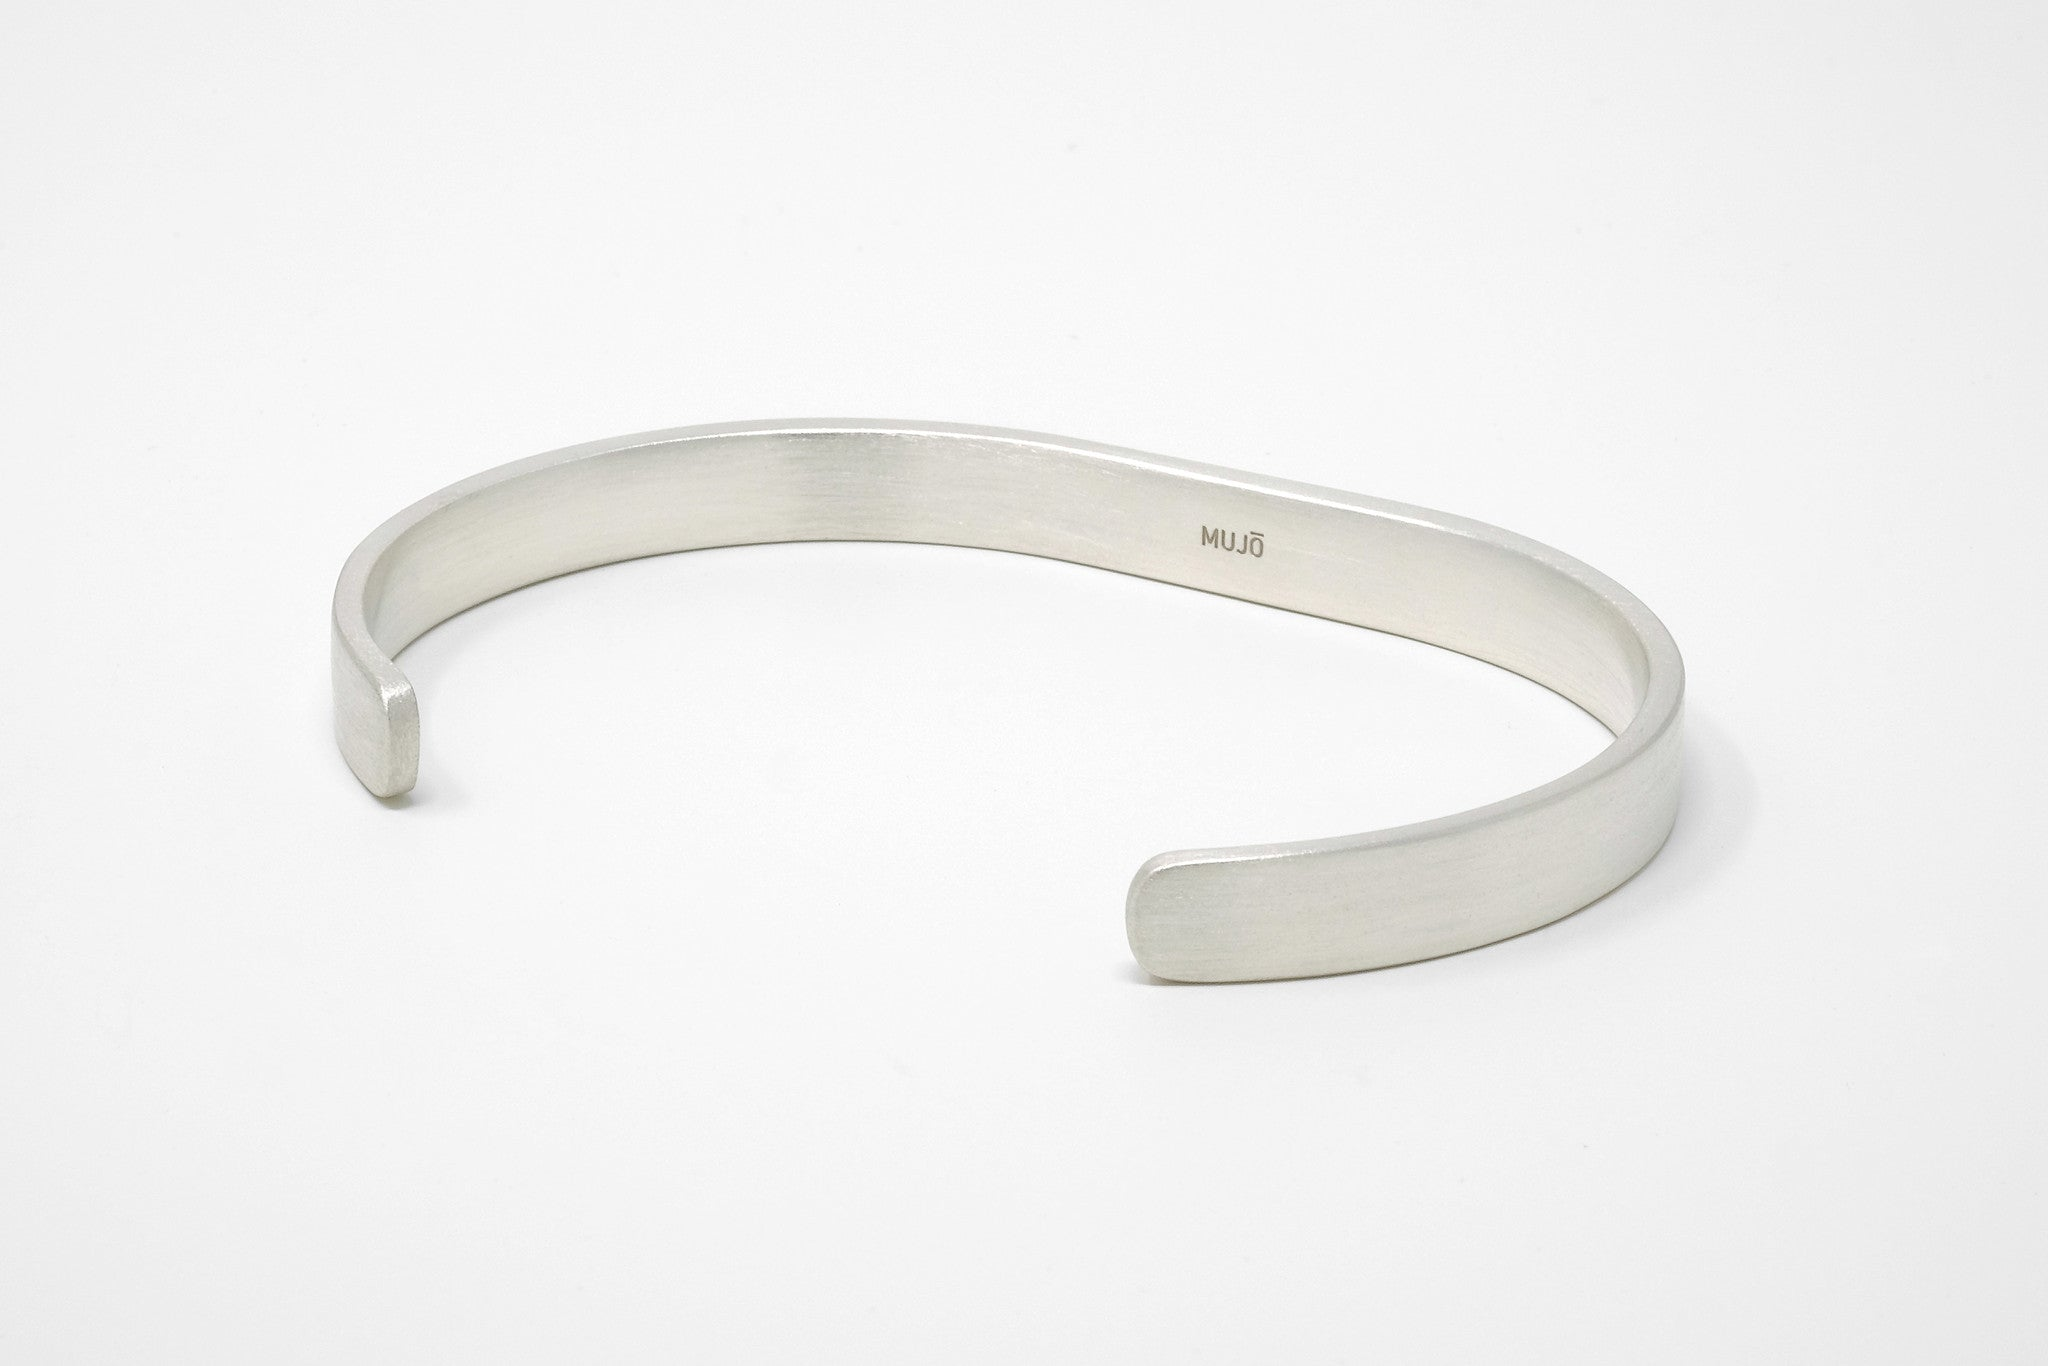 CS 8mm Cuff Bracelet // Sterling Silver - Men's Cuff Bracelet - MUJO NYC - 1